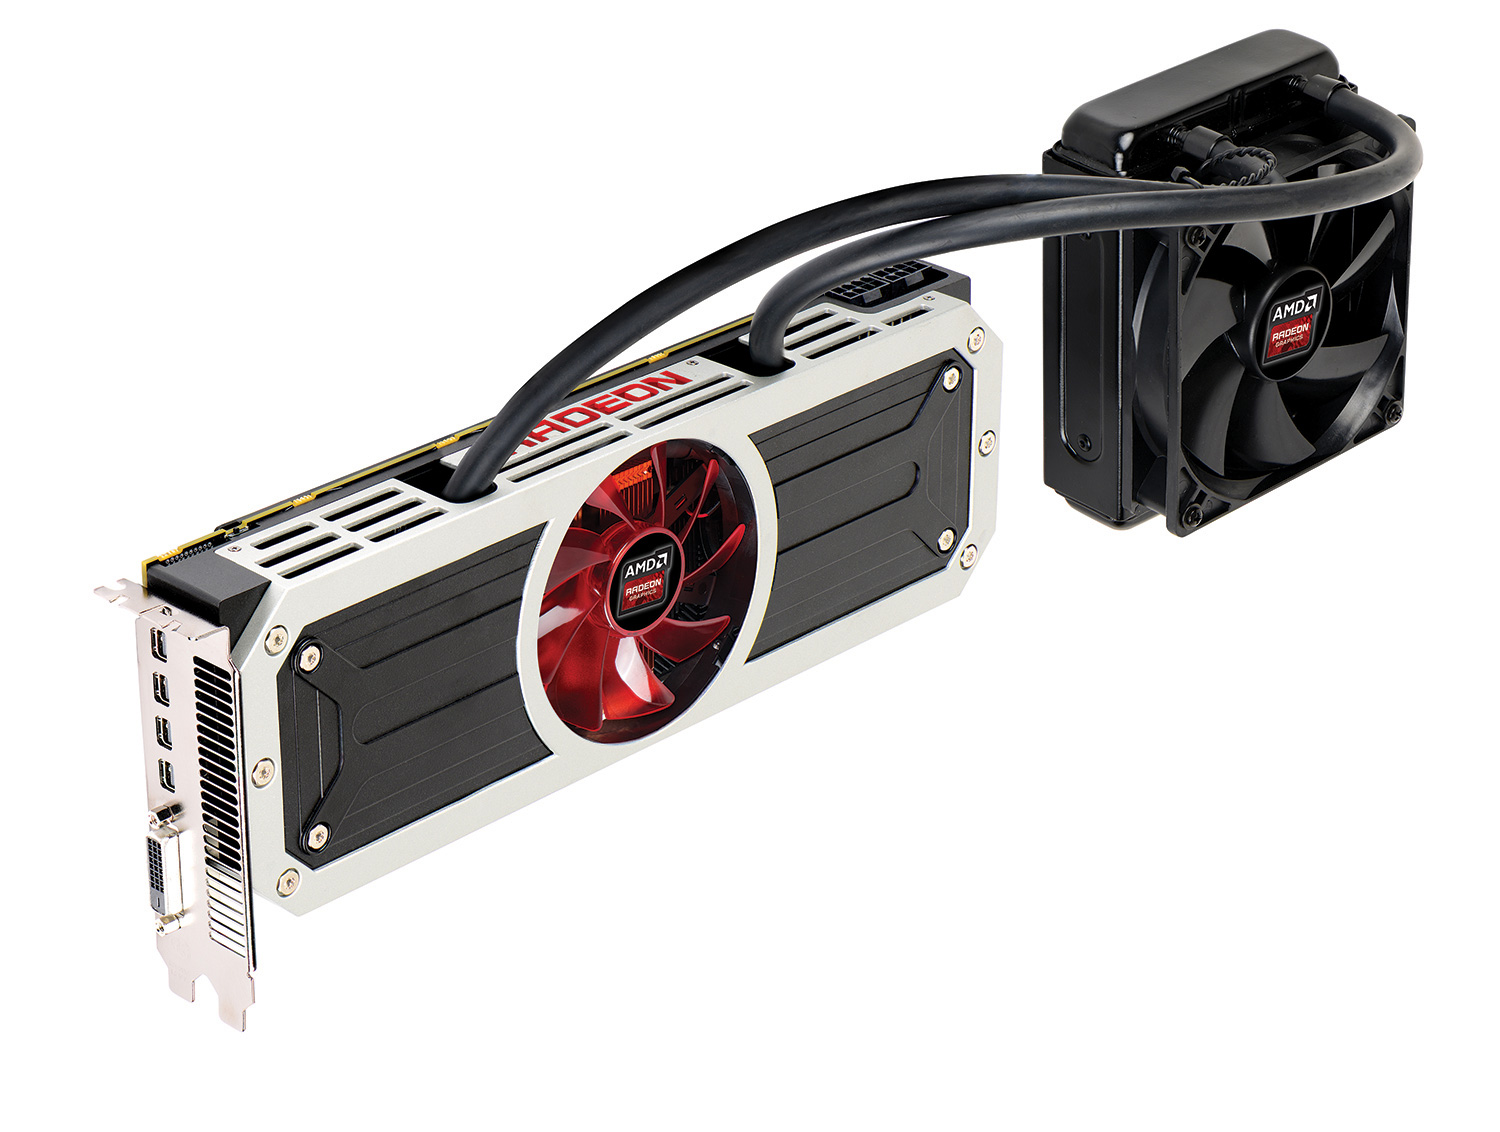 The AMD Radeon R9 295X2 Review